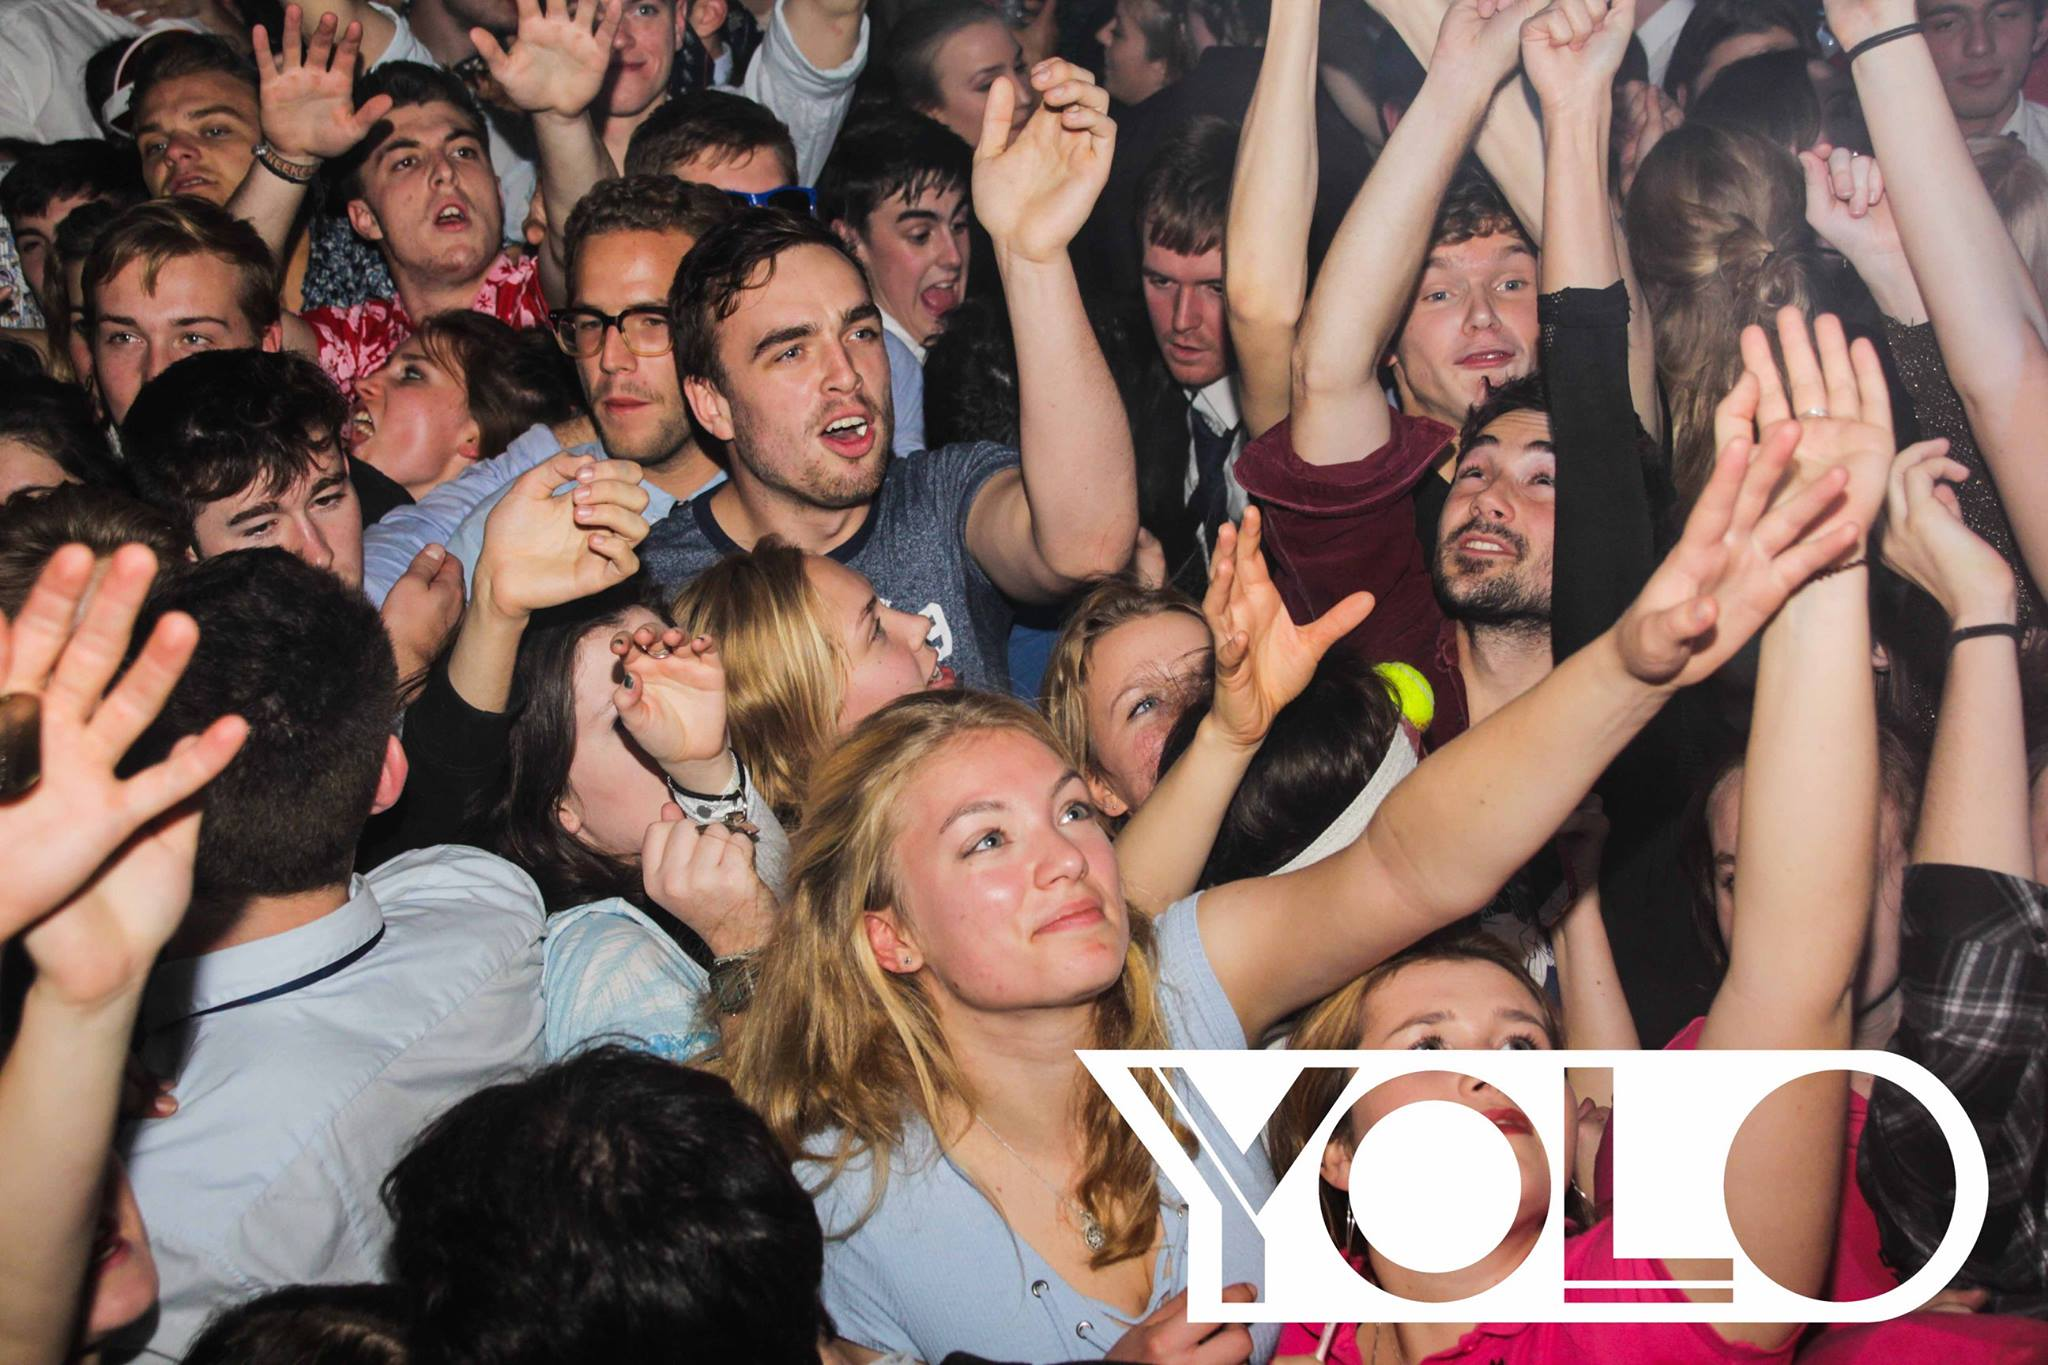 the second coming of yolo